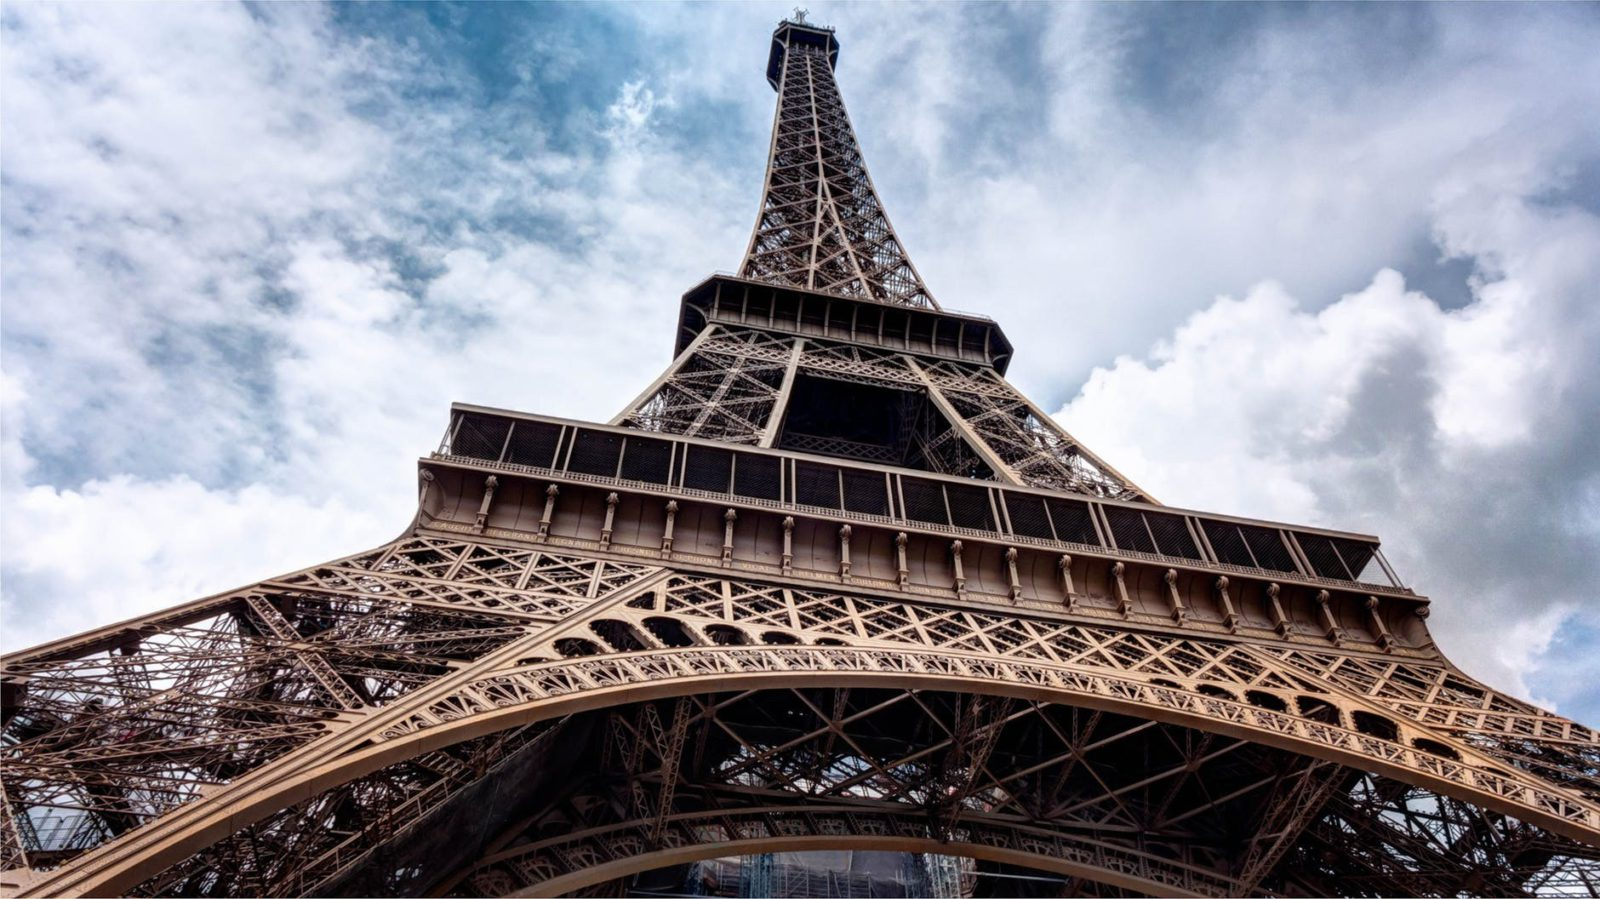 Flight Deal Round Trip From Dallas Area to Paris #dallas #paris